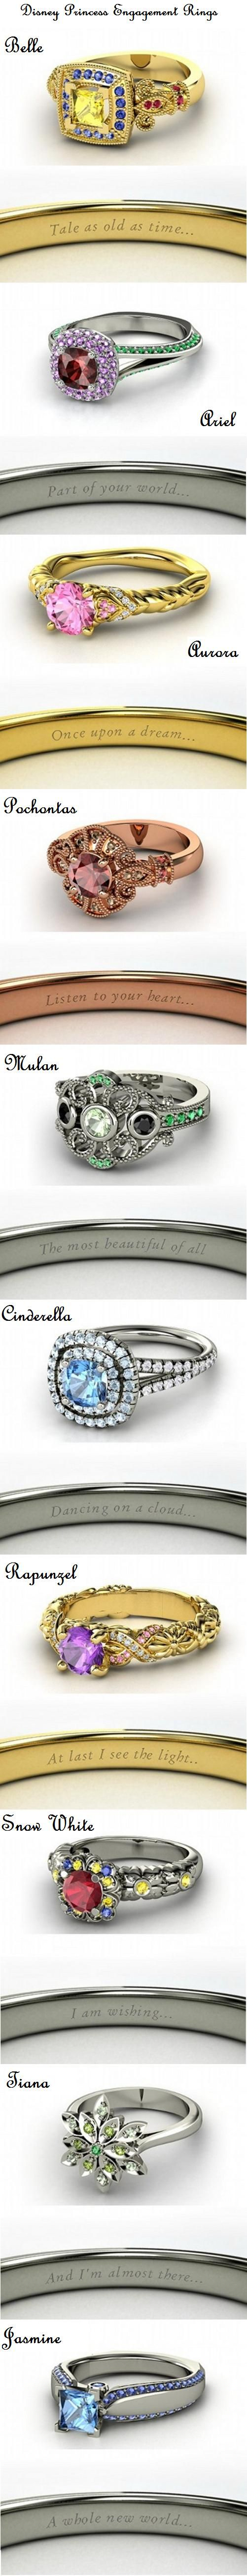 Disney Princess Engagement Rings!!!! Ariel, Pocahontas, Cinderella, Snow White, Mulan, and Jasmine!